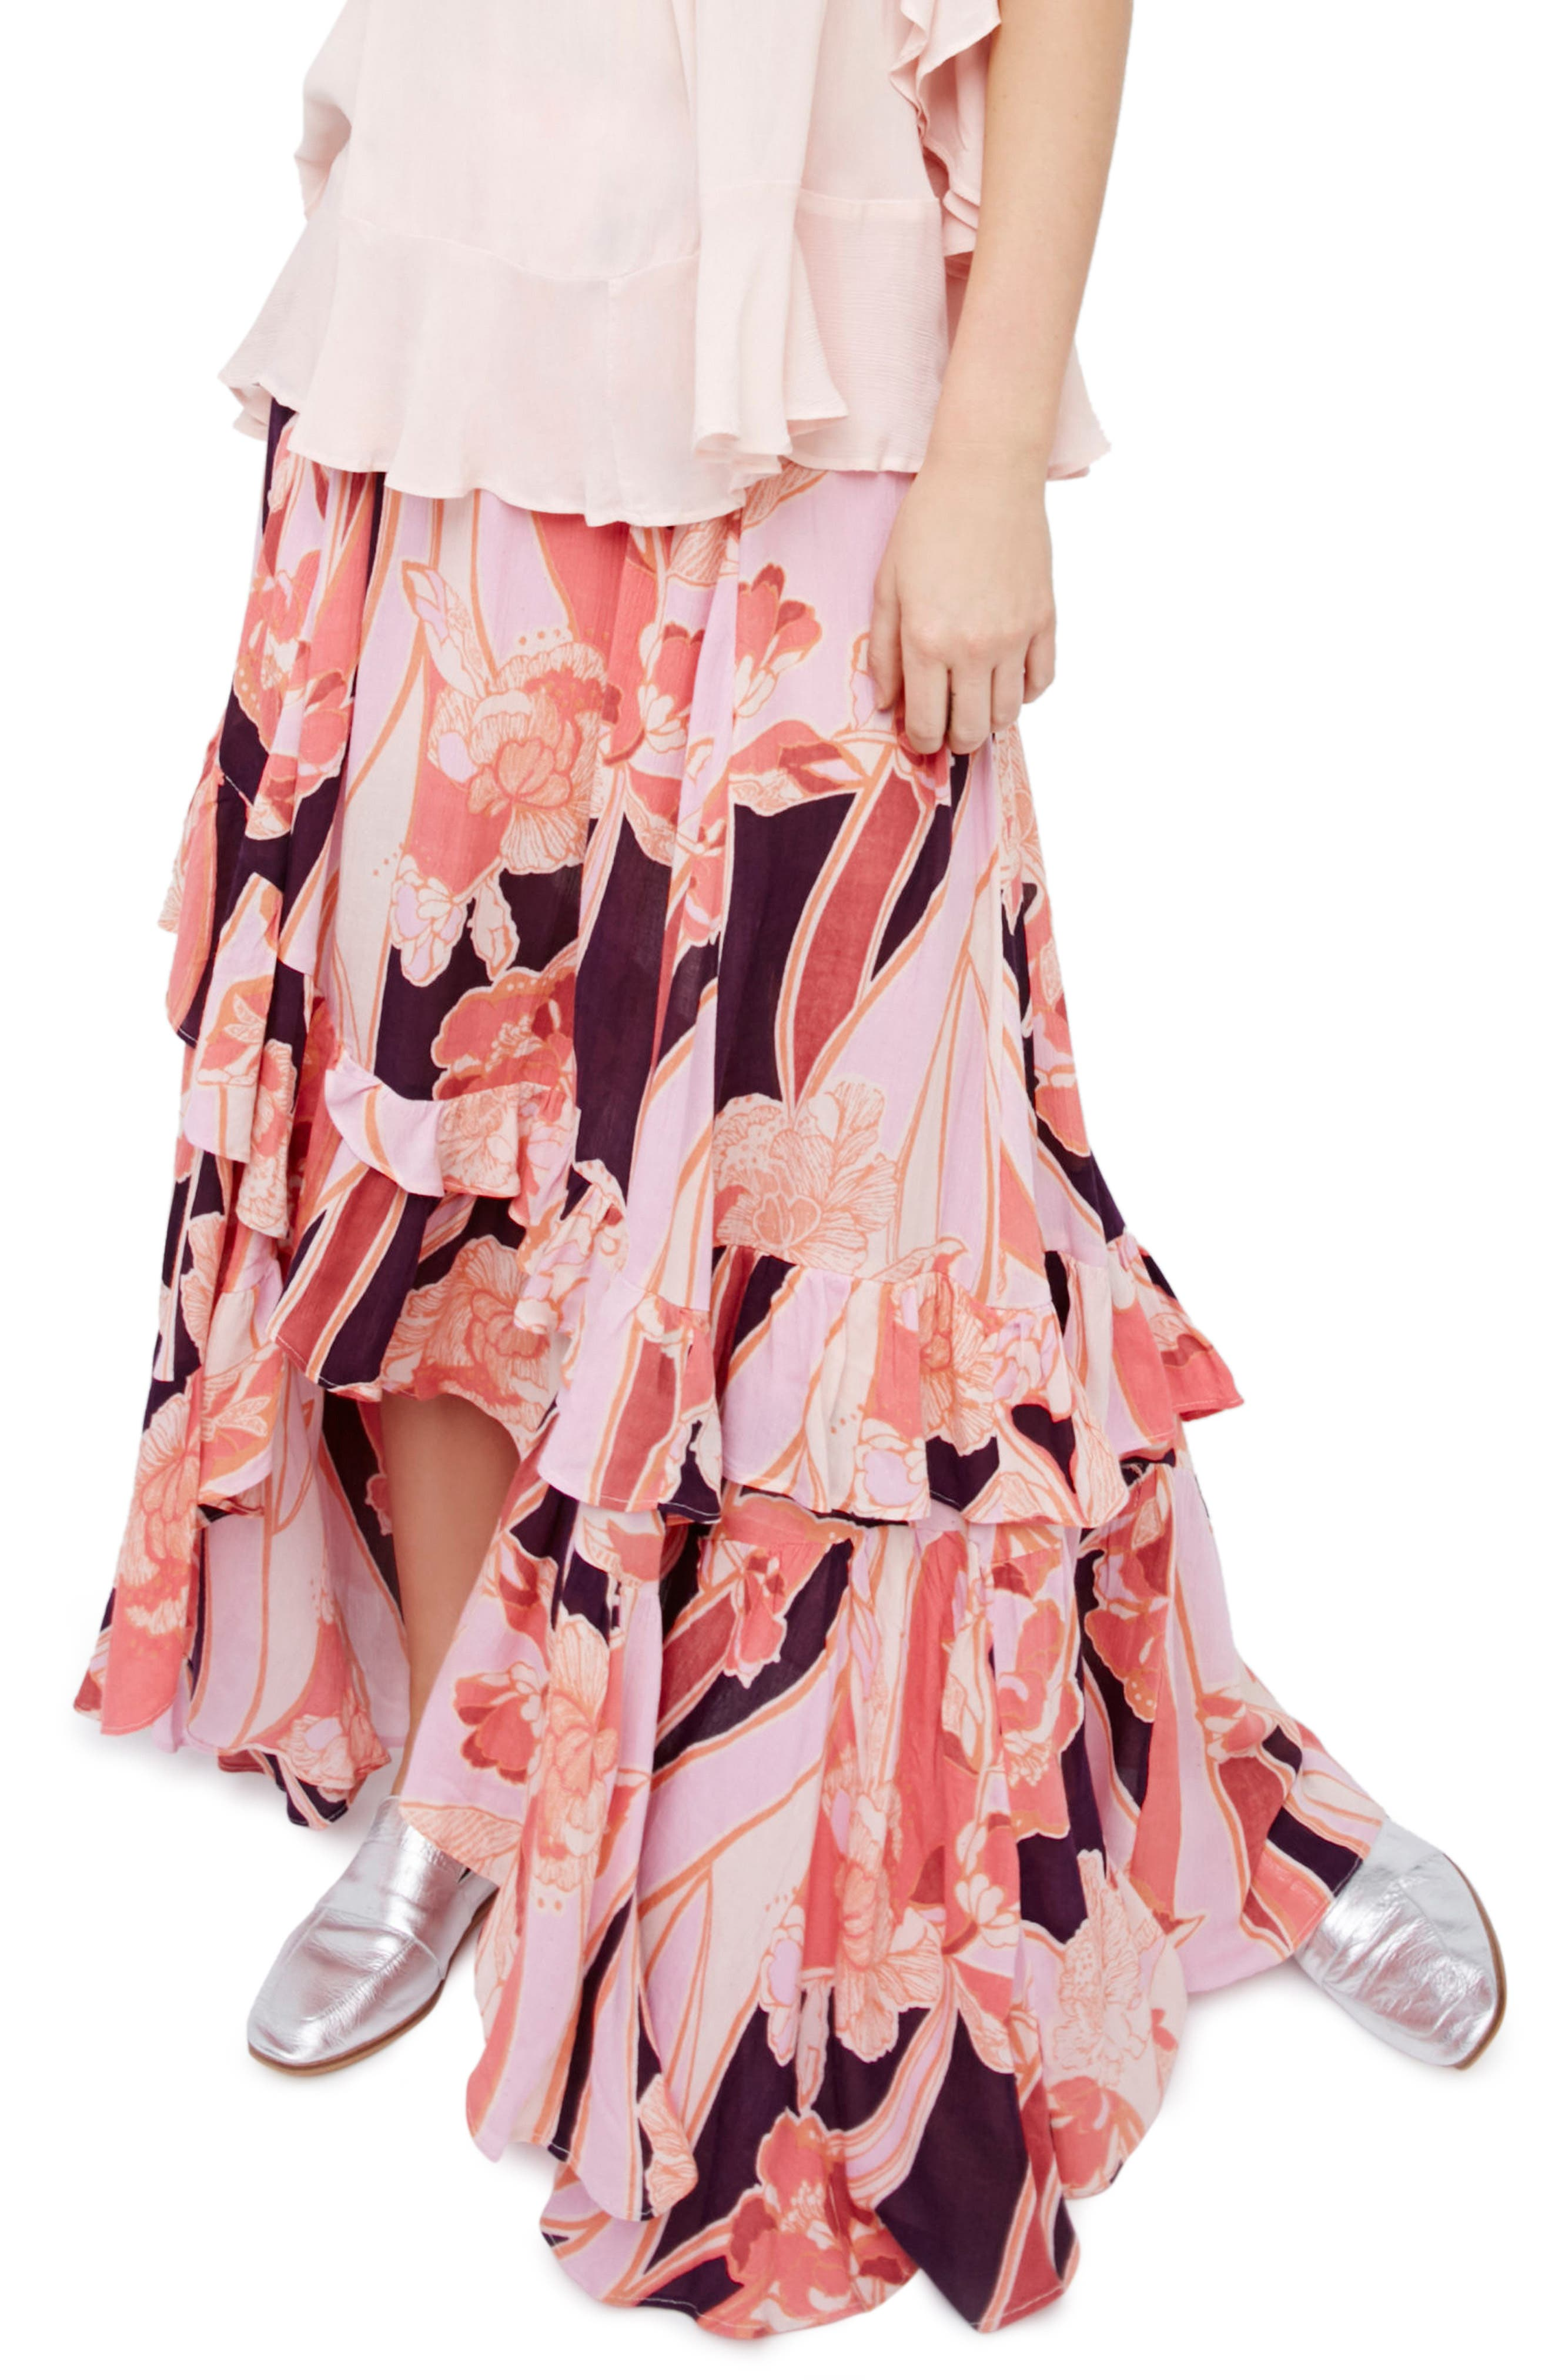 Free People Bring Back the Summer Maxi Skirt